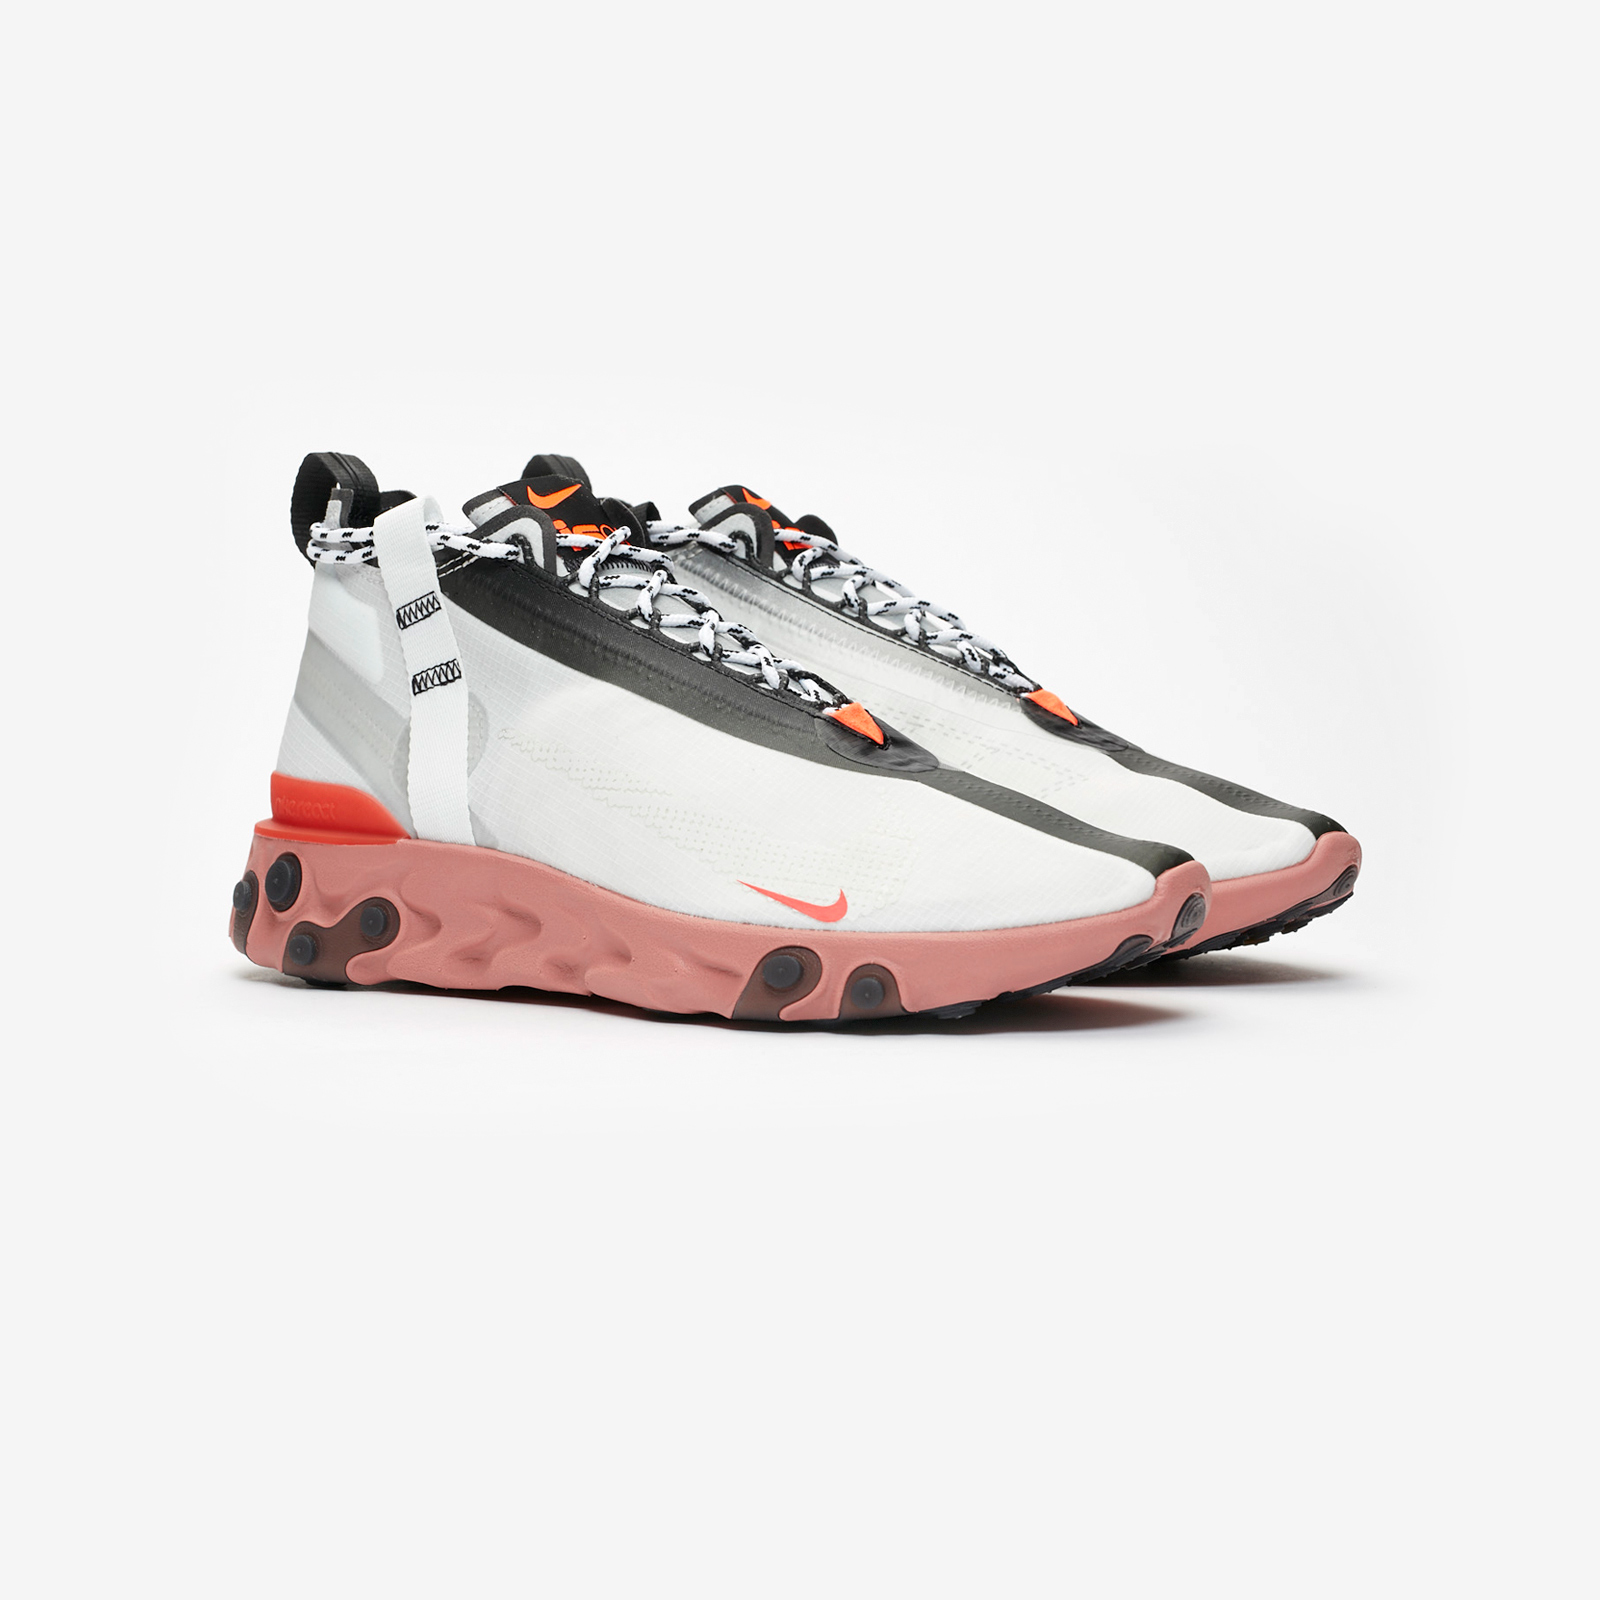 8d29dfa86a9374 Nike React Runner Mid WR ISPA - At3143-100 - Sneakersnstuff ...